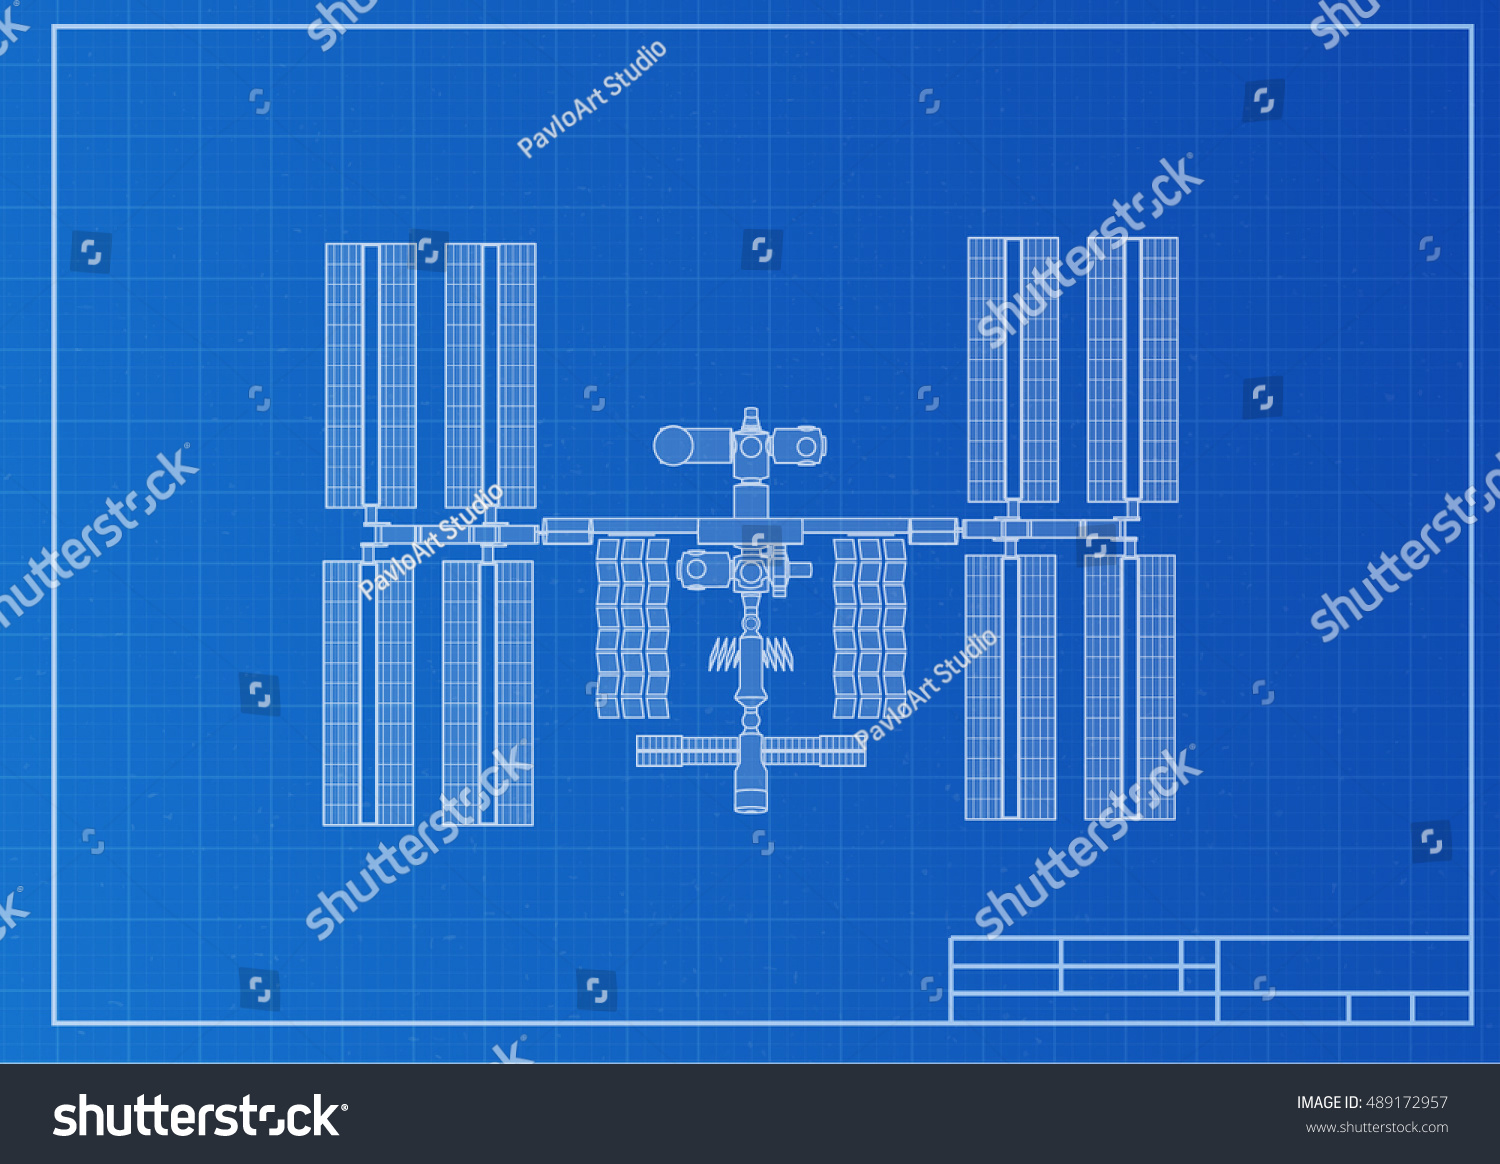 International space station plot on blueprint vectores en stock international space station plot on blueprint background vector illustration malvernweather Image collections